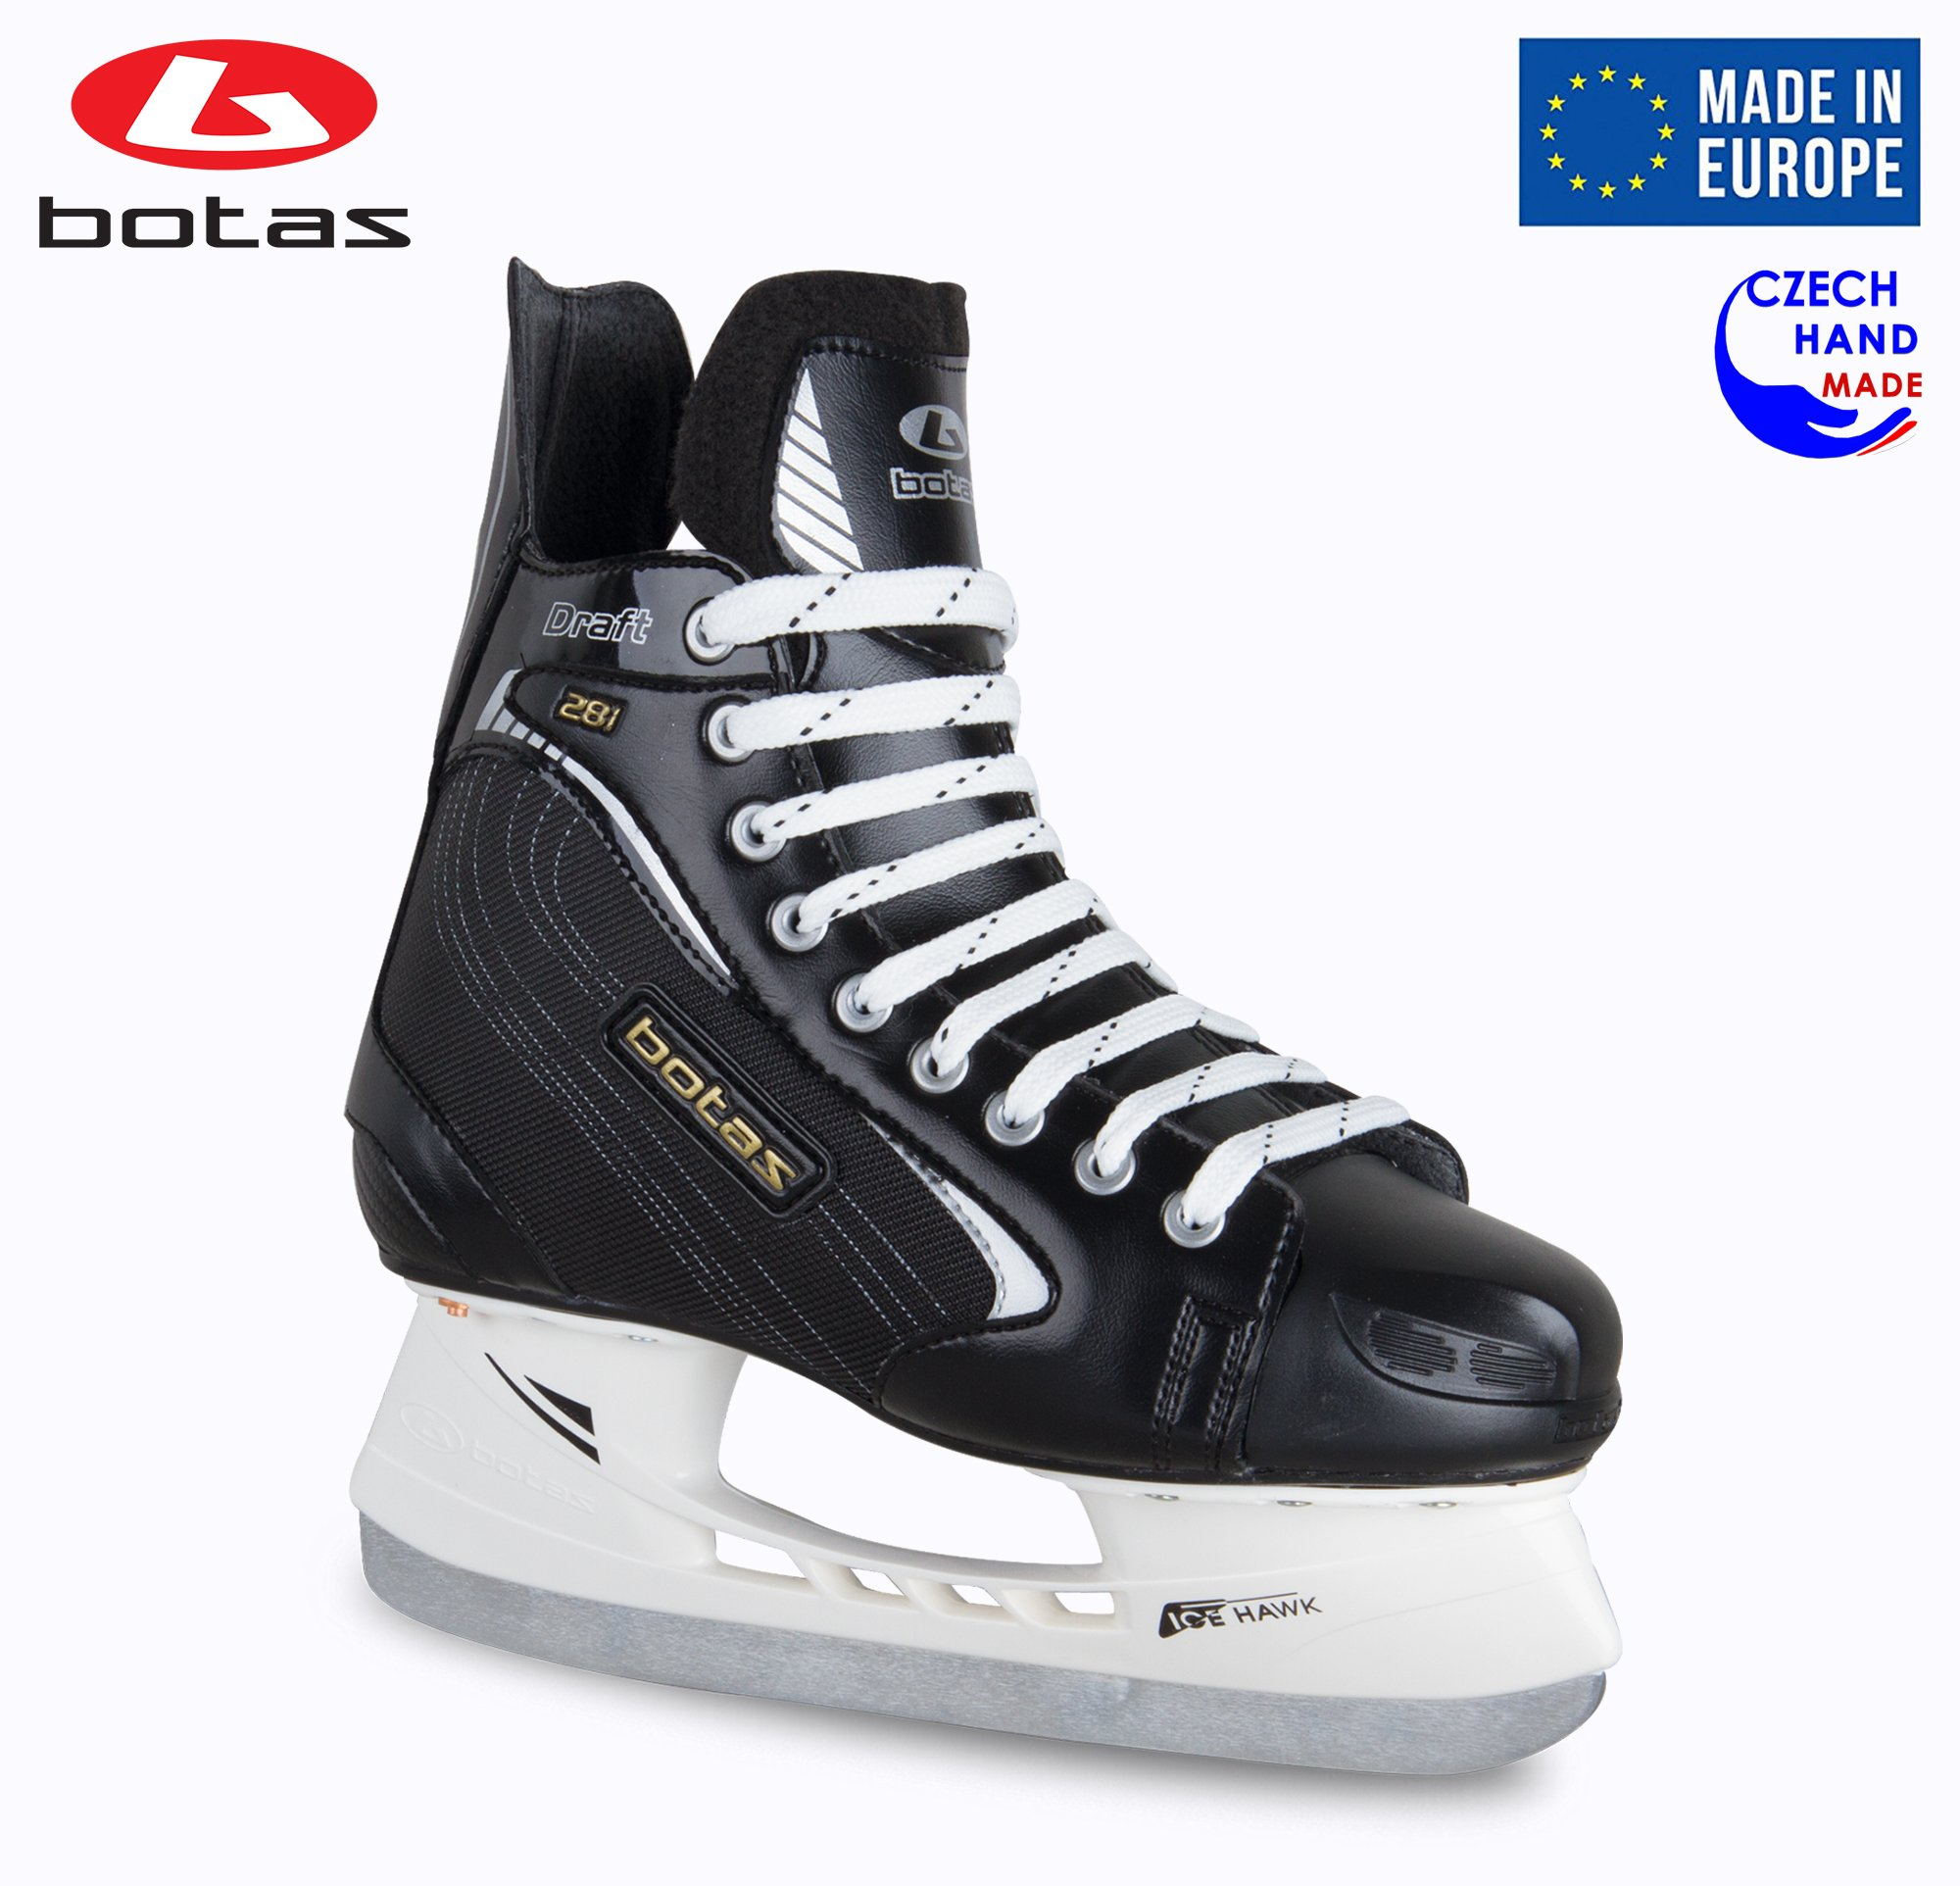 Botas - Draft 281 - Men's Ice Hockey Skates | Made in Europe (Czech Republic) | Color: Black, Size Adult 4